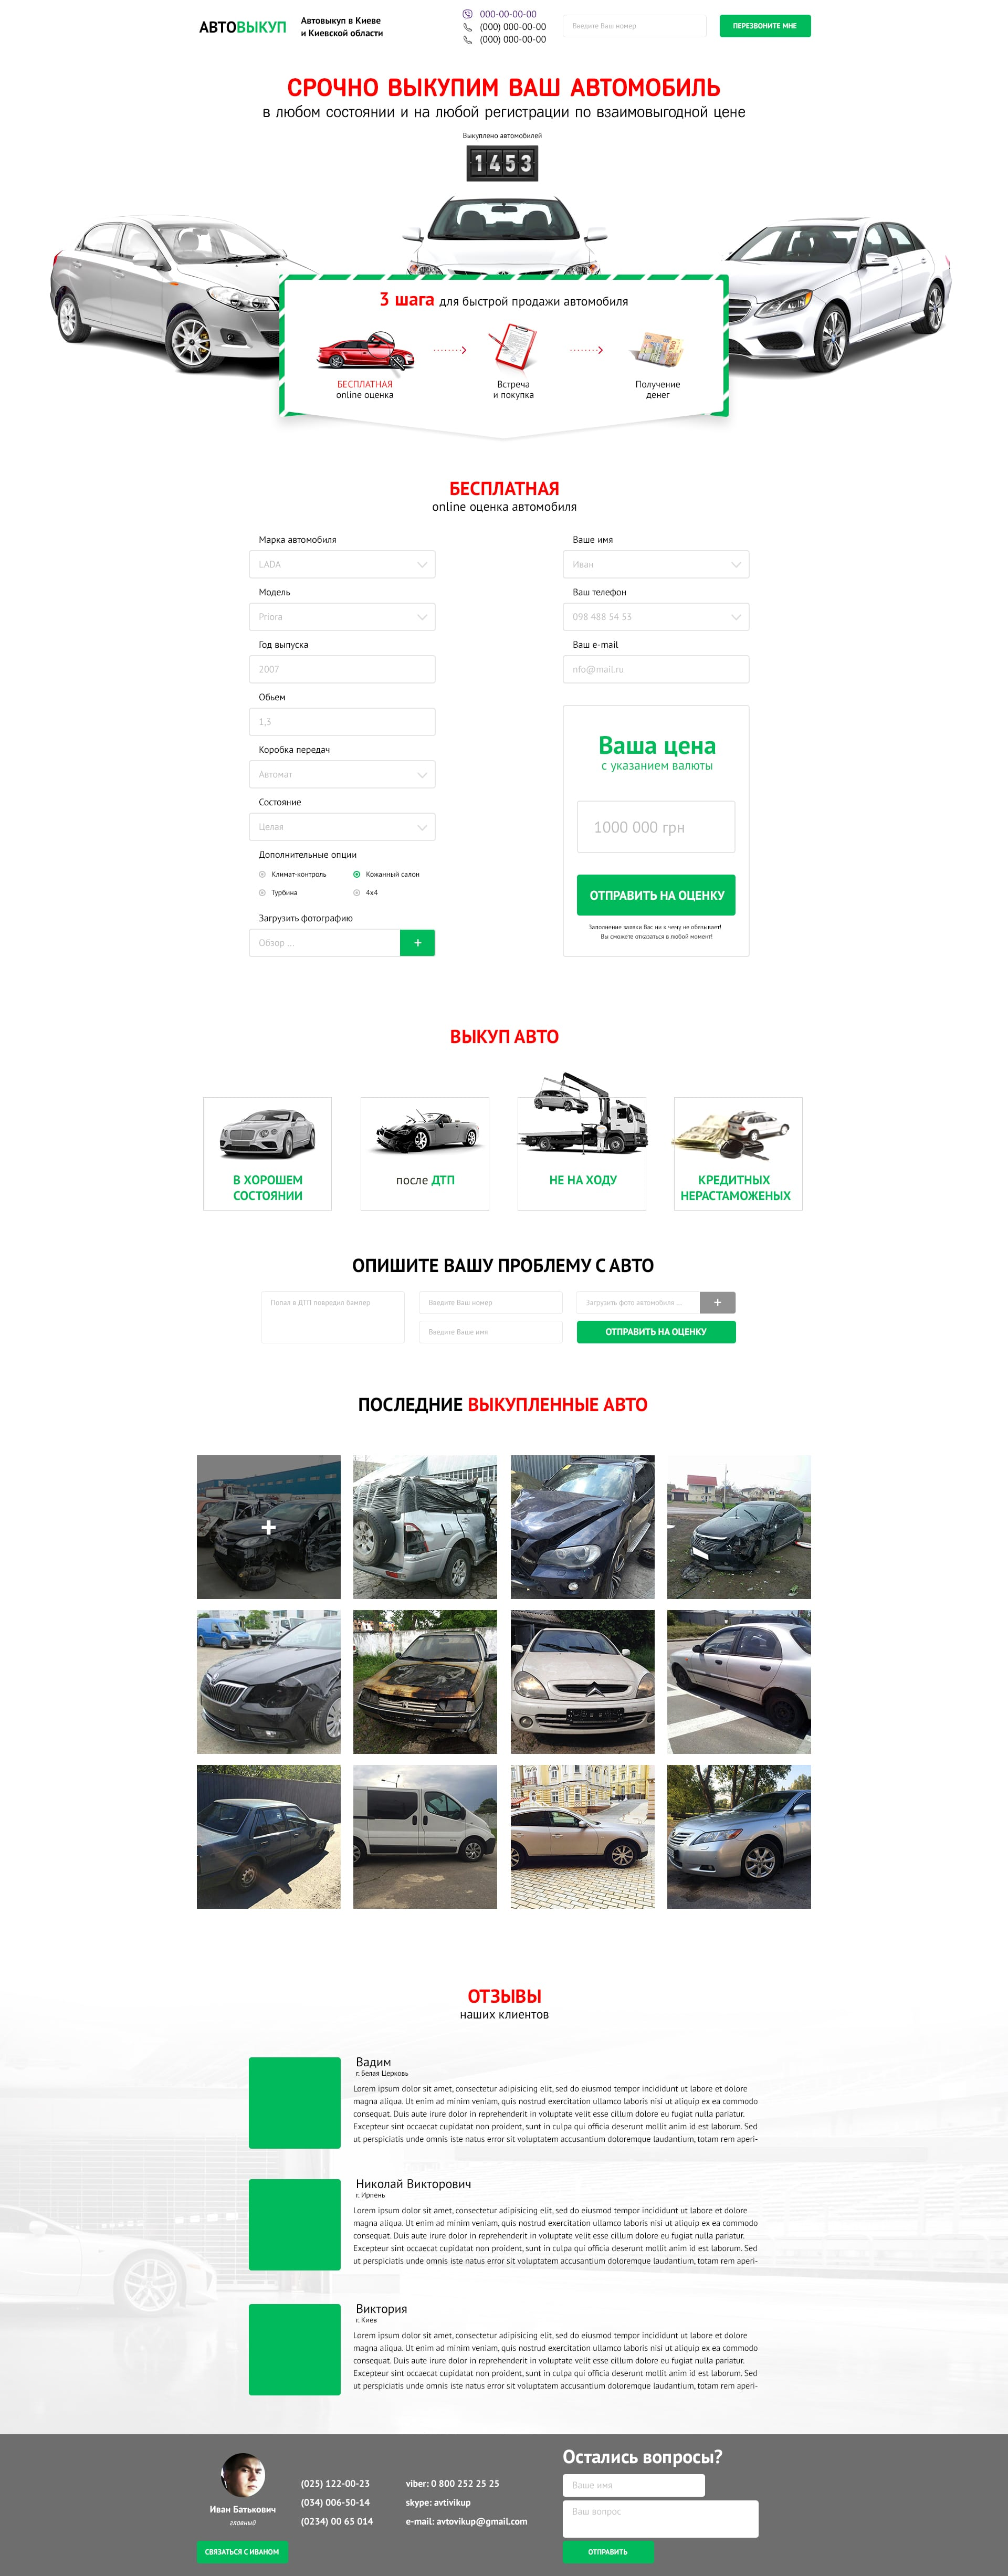 Ready and customized sites for sales, autorepayment